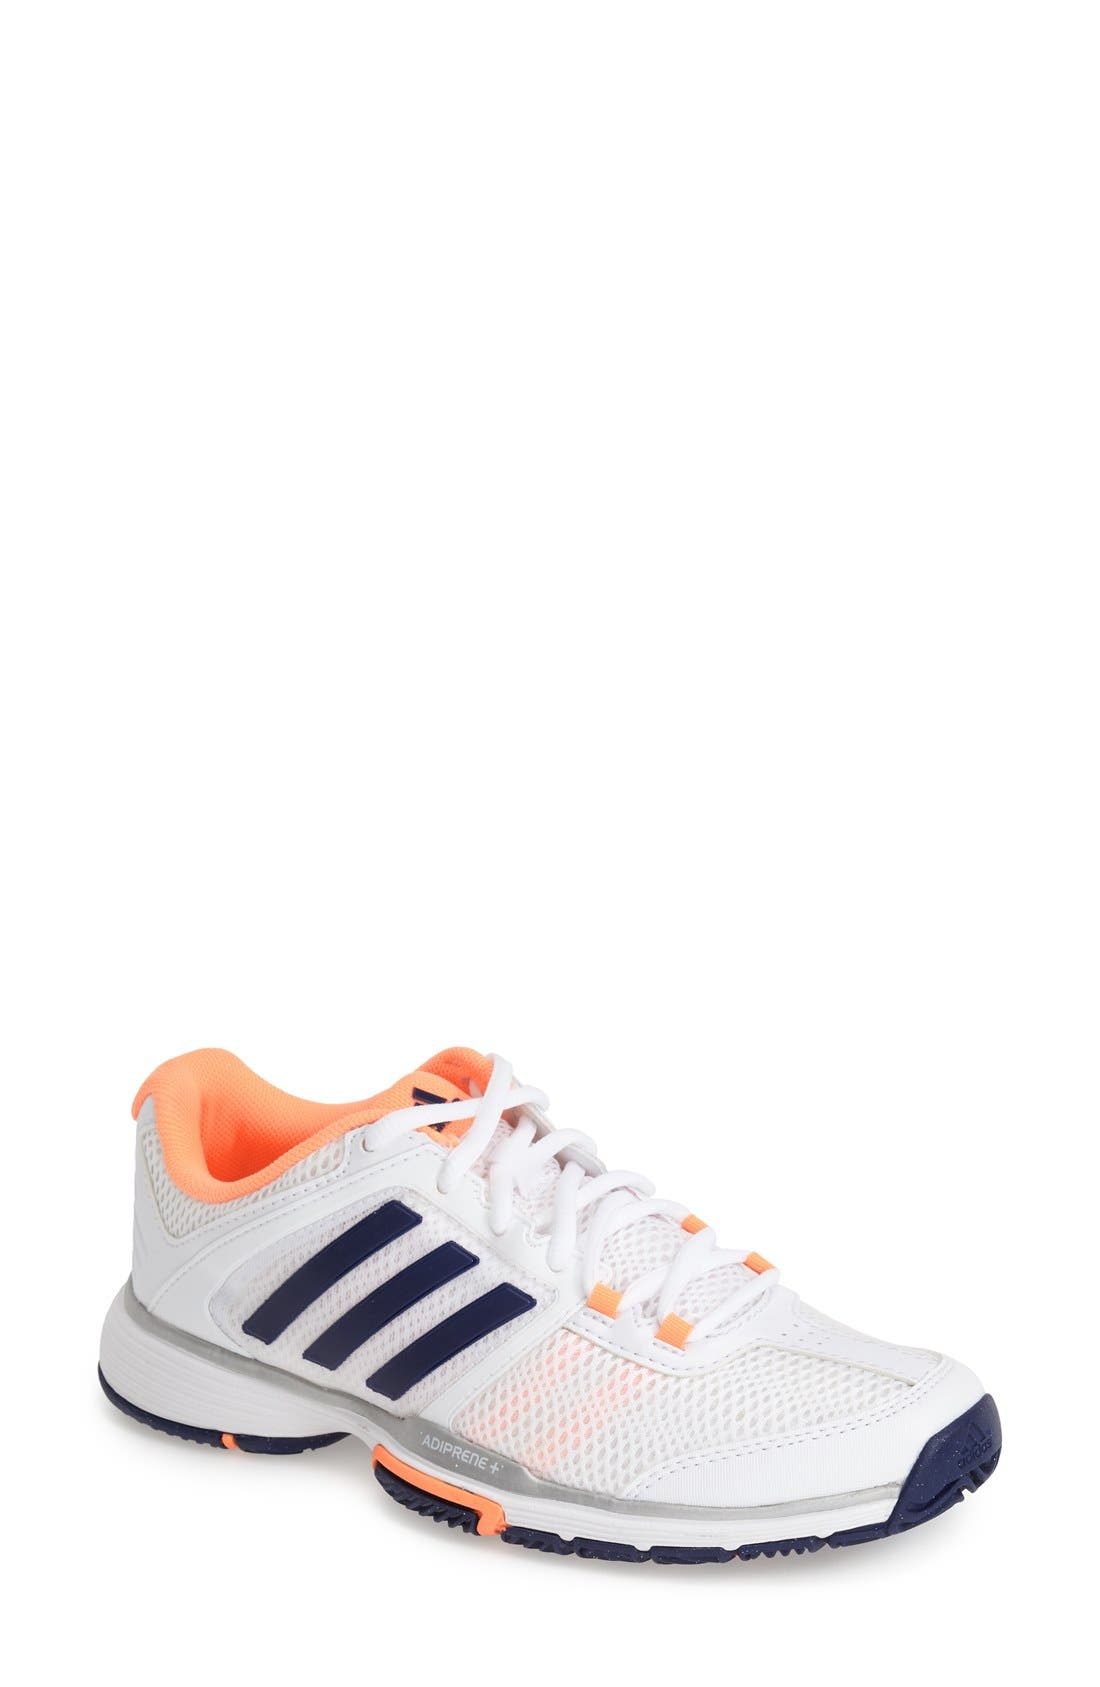 Main Image - adidas 'adiPower Barricade Team 4' Tennis Shoe (Women)